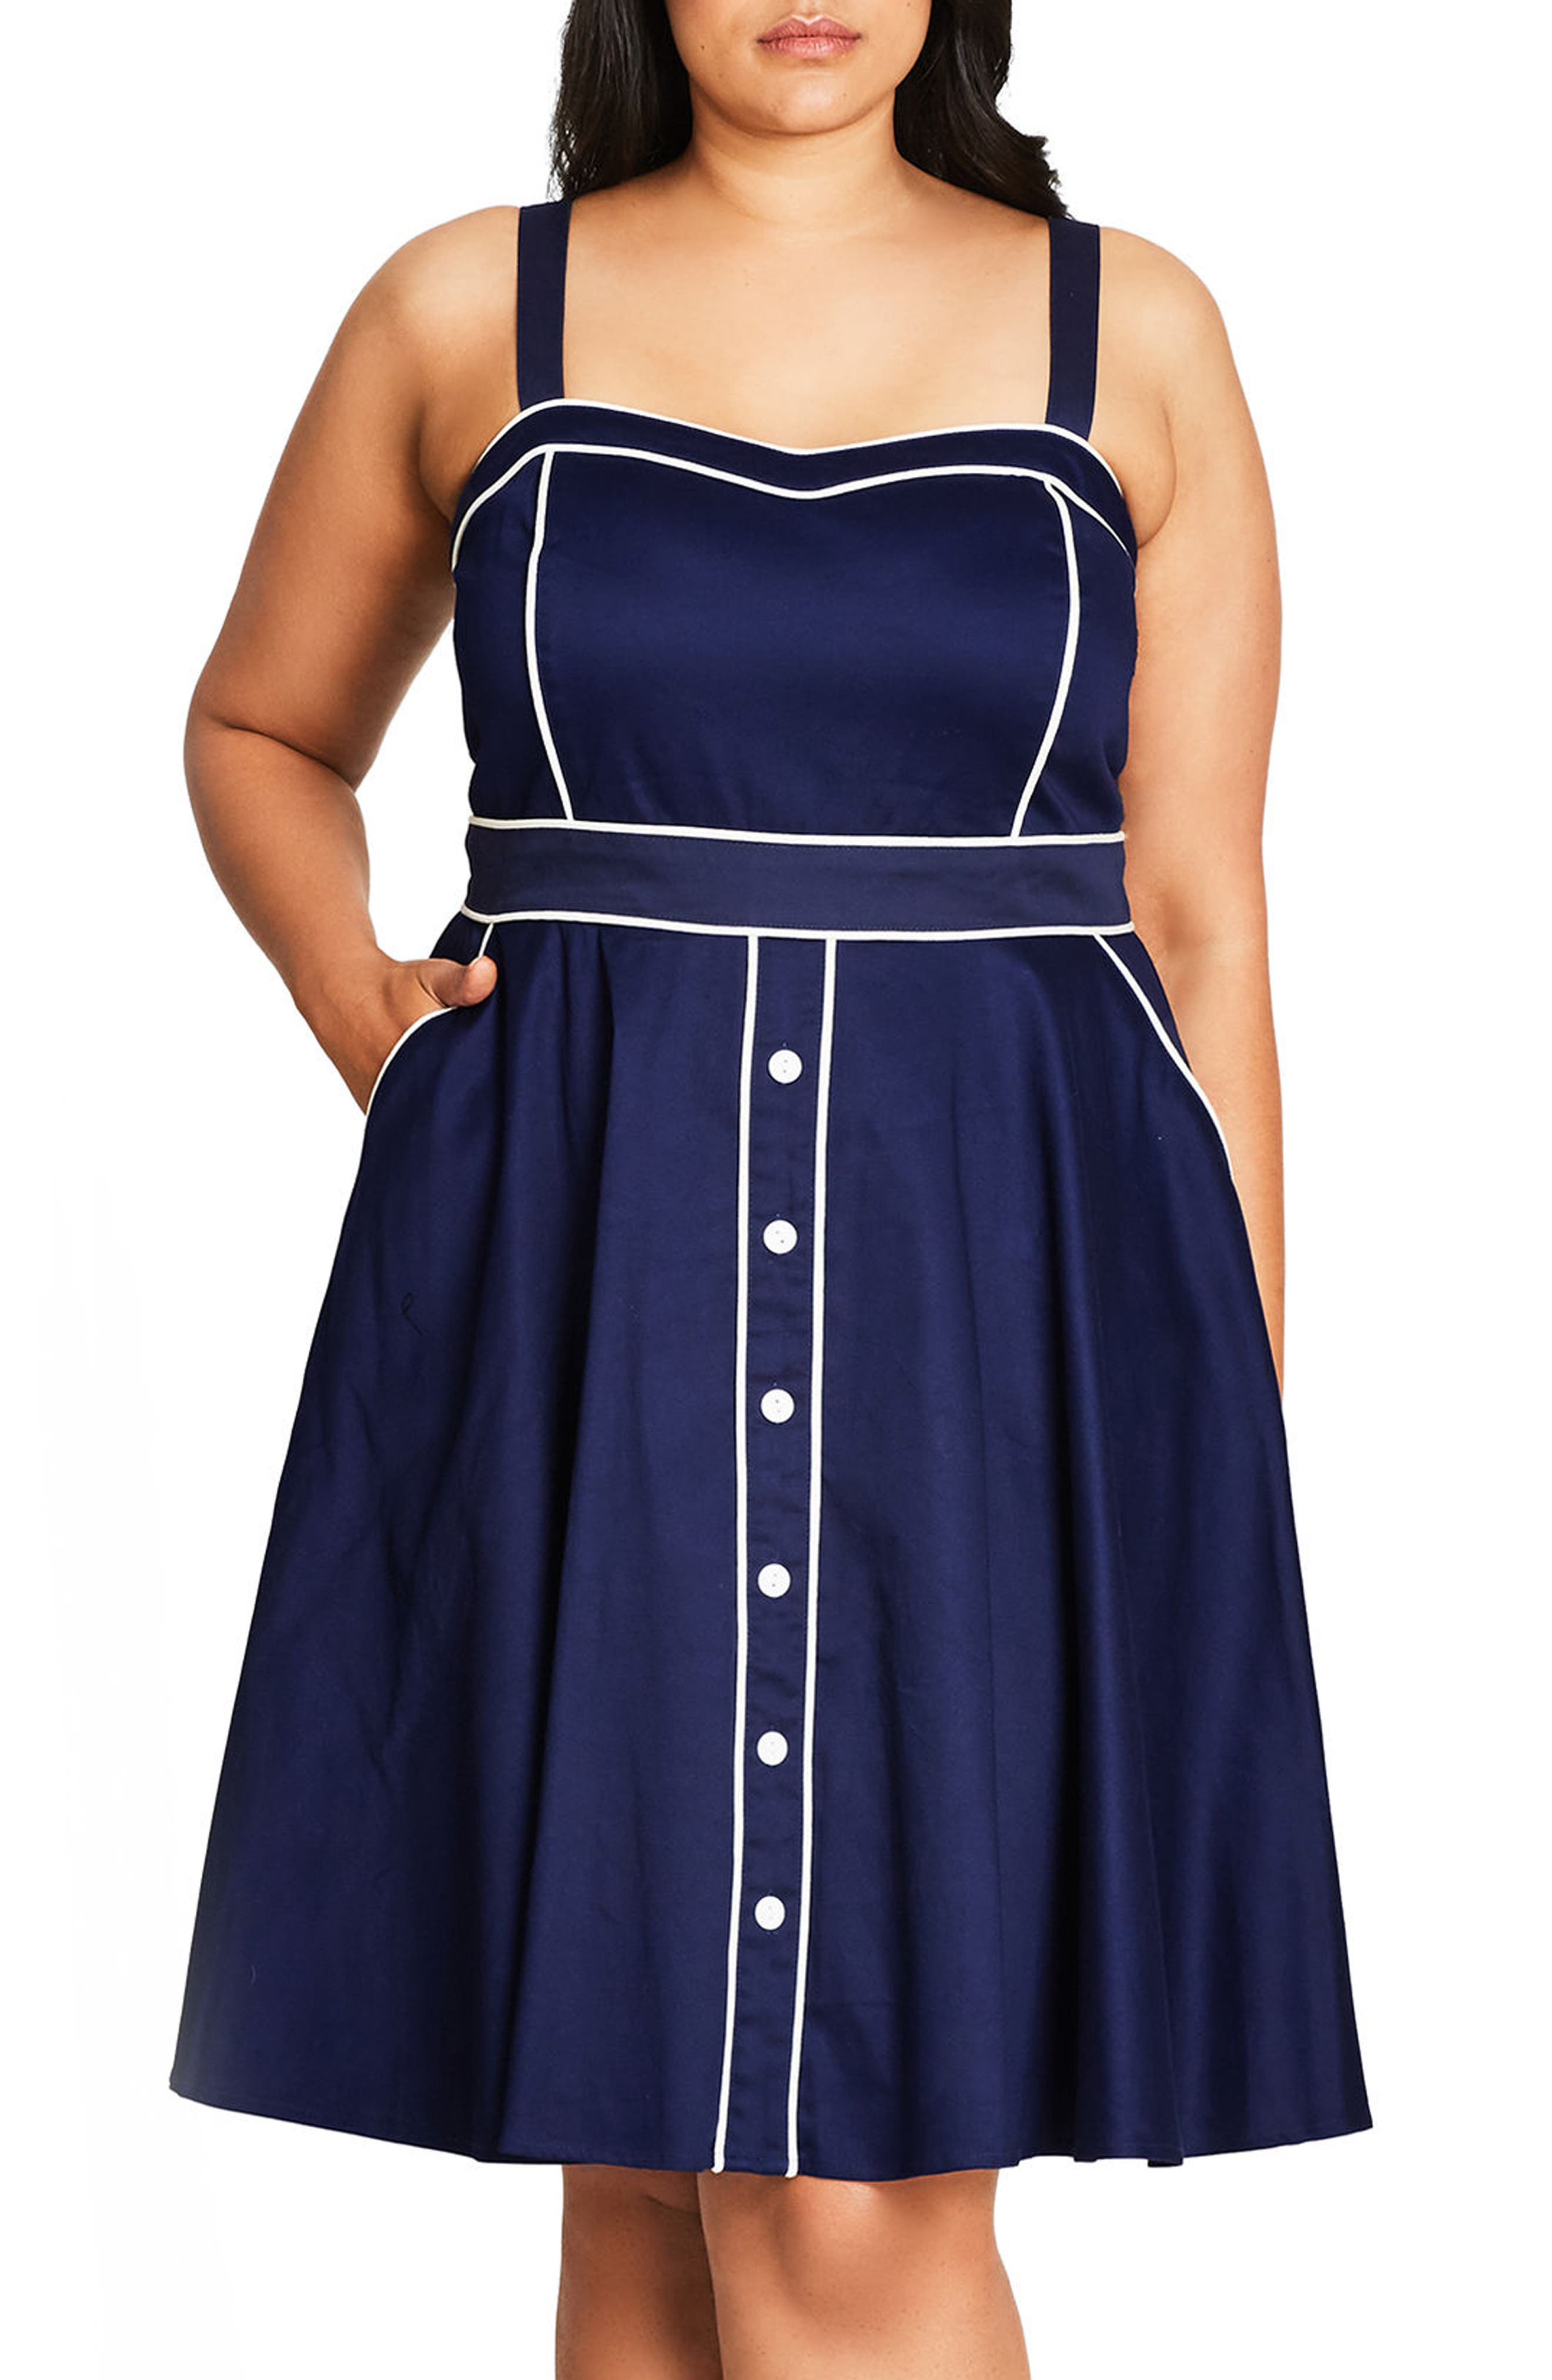 City Chic Darling Contrast Piped Fit & Flare Sundress